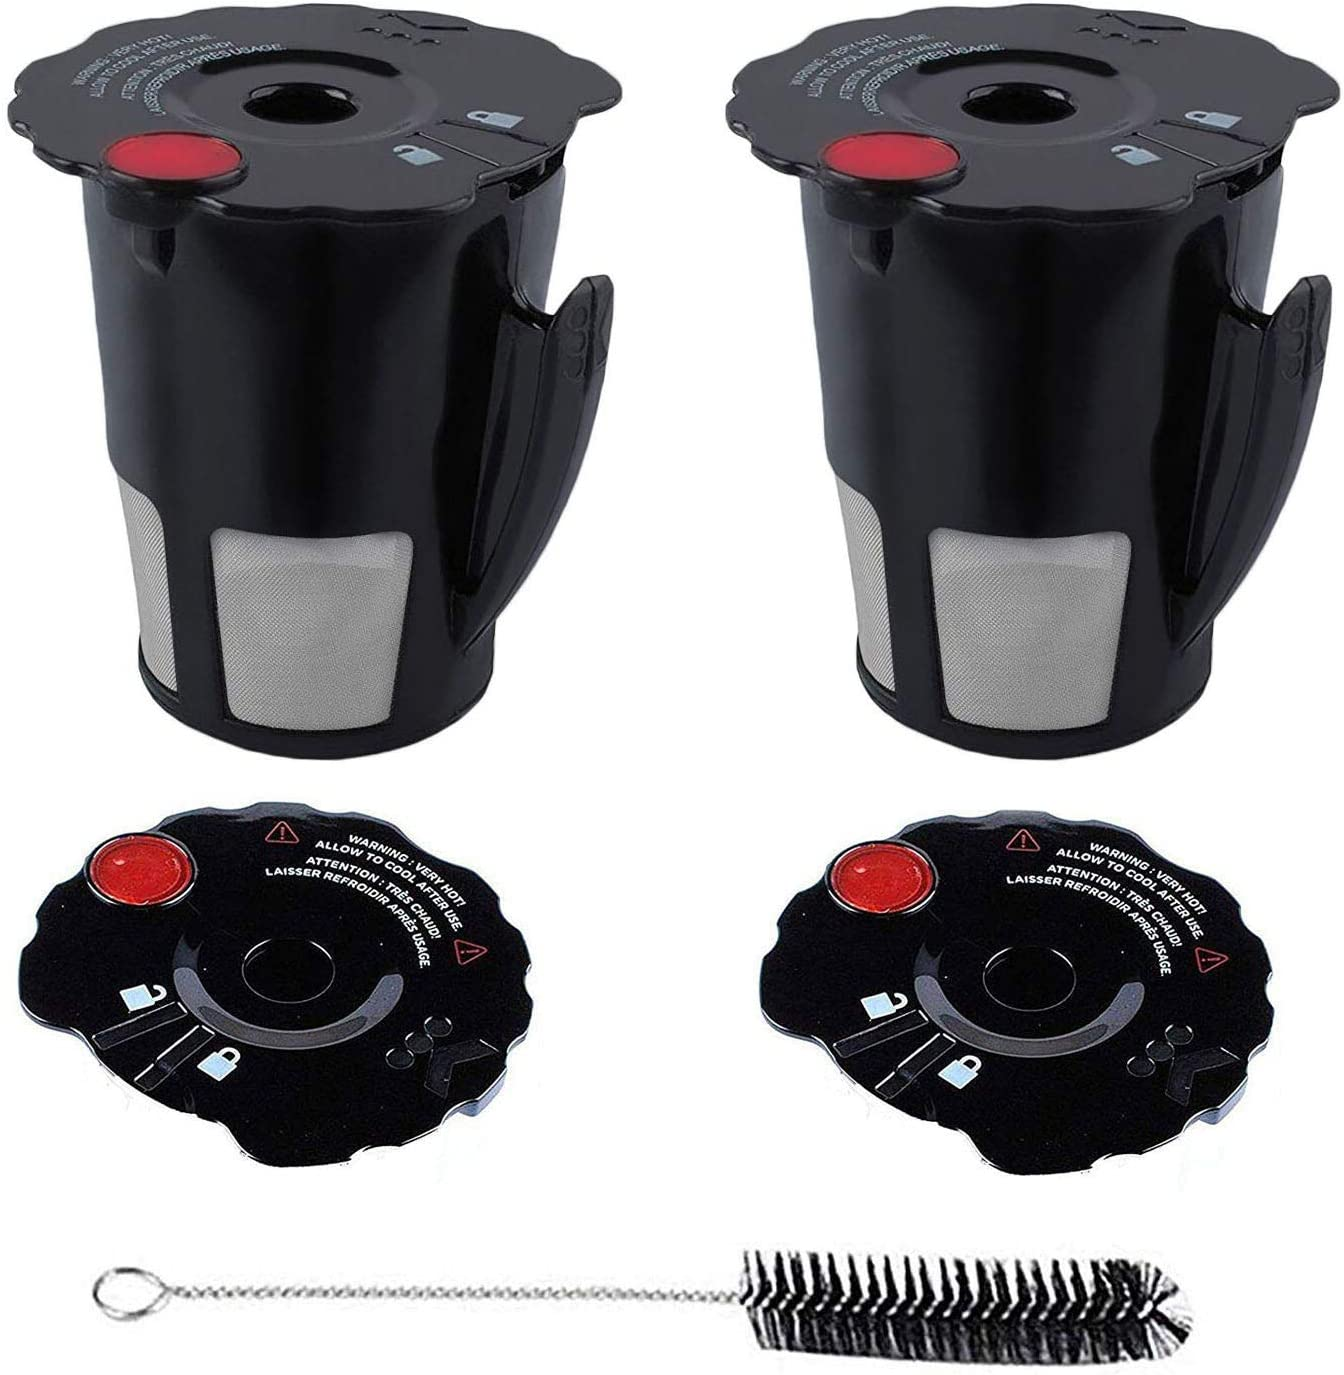 119367 Reusable Coffee Filter Compatible with Keurig My K-Cup 2.0 Filter,Refillable Pod Coffee Makers,Replace K200,K350,K400,K475,K500 Series with Coffee Lid Cleaning Brush BPA Free Ground (2pack)